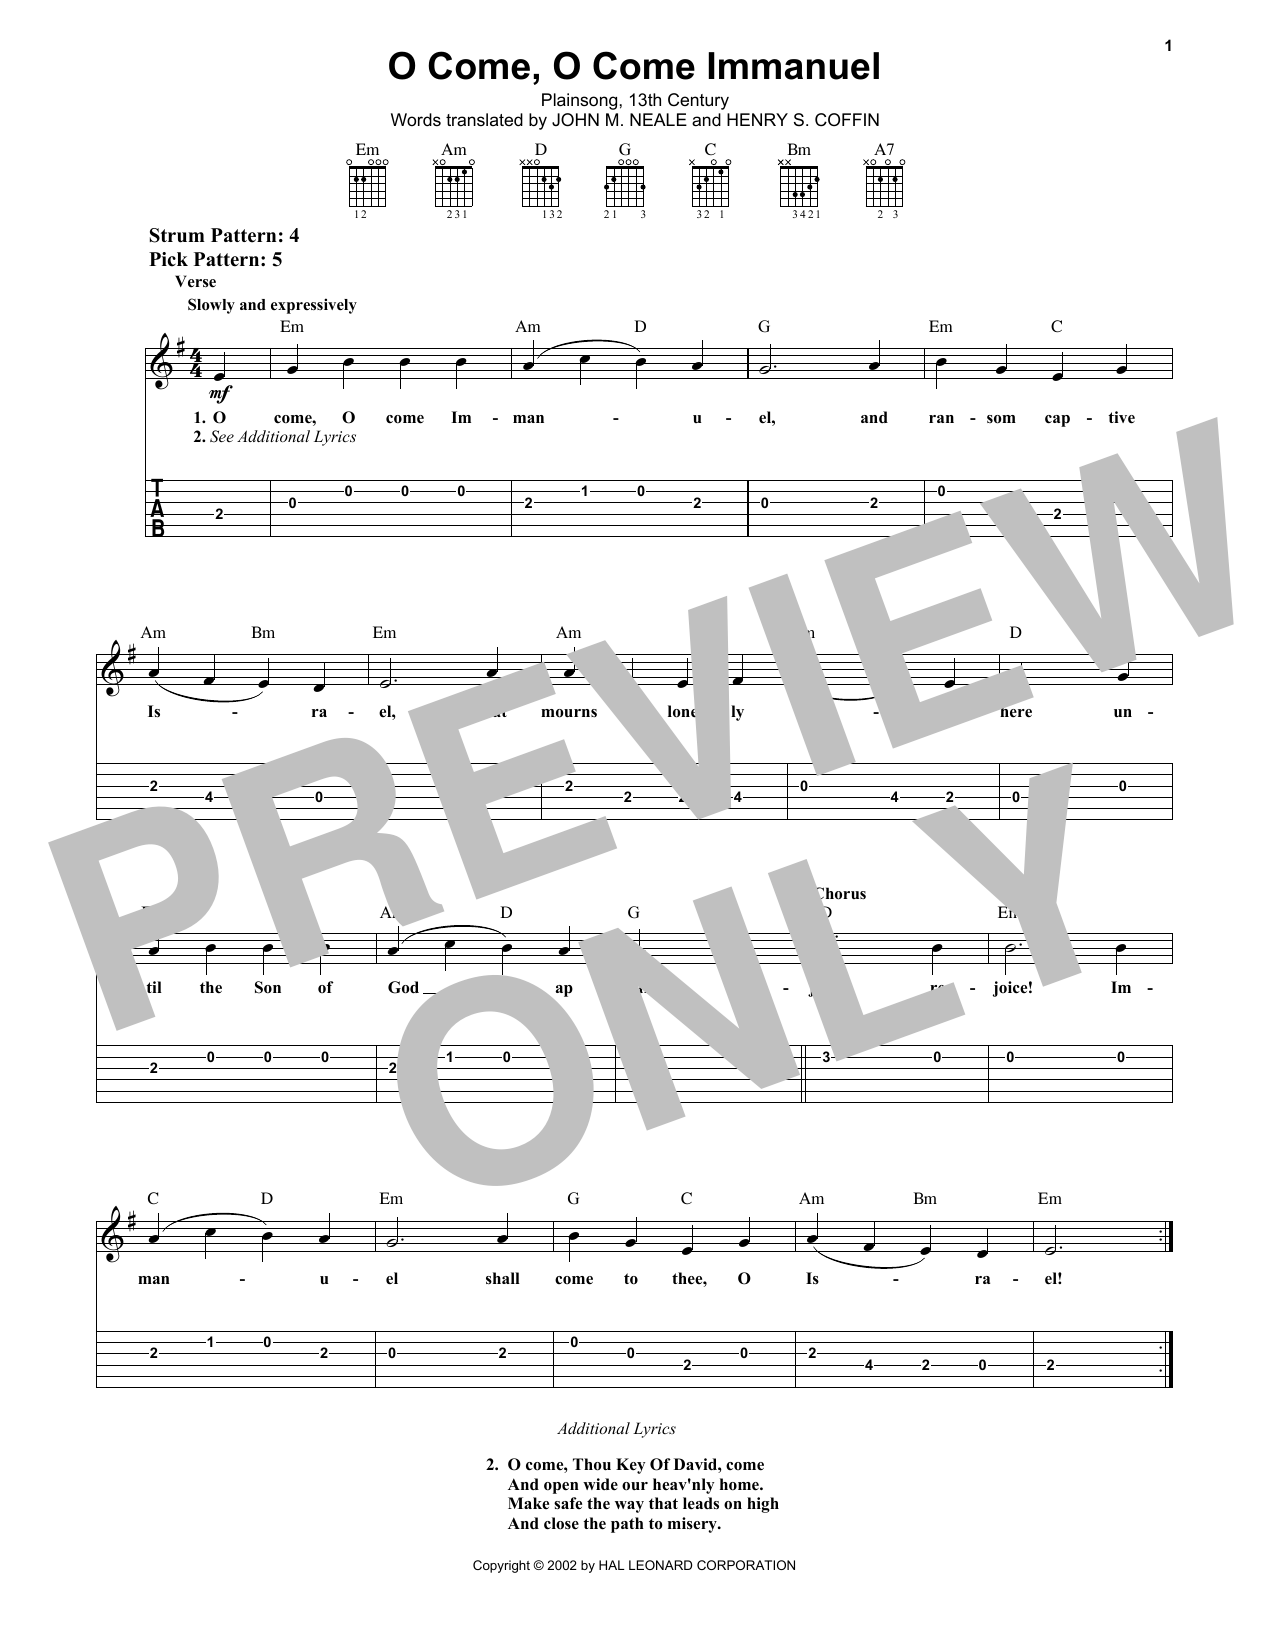 O Come, O Come Immanuel Sheet Music